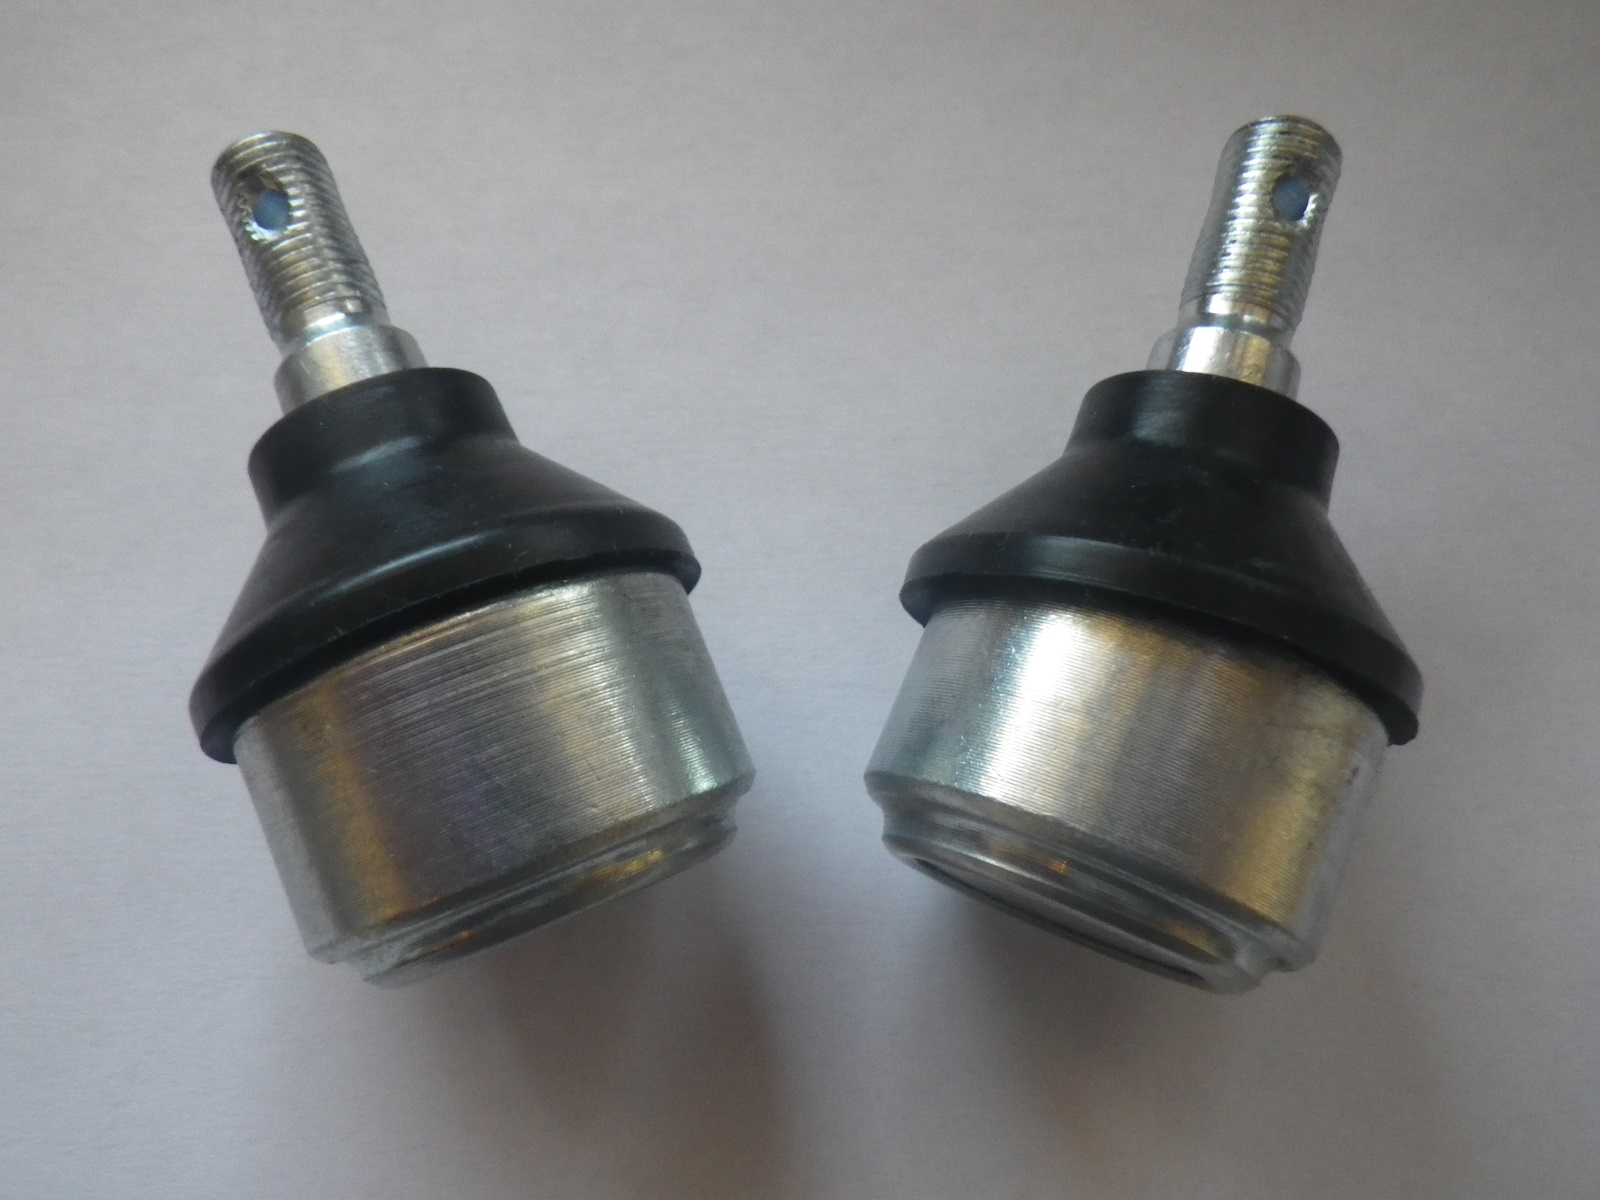 Polaris Magnum 500 4x4 2001-2002 Front Lower Ball Joint Replacement Pair